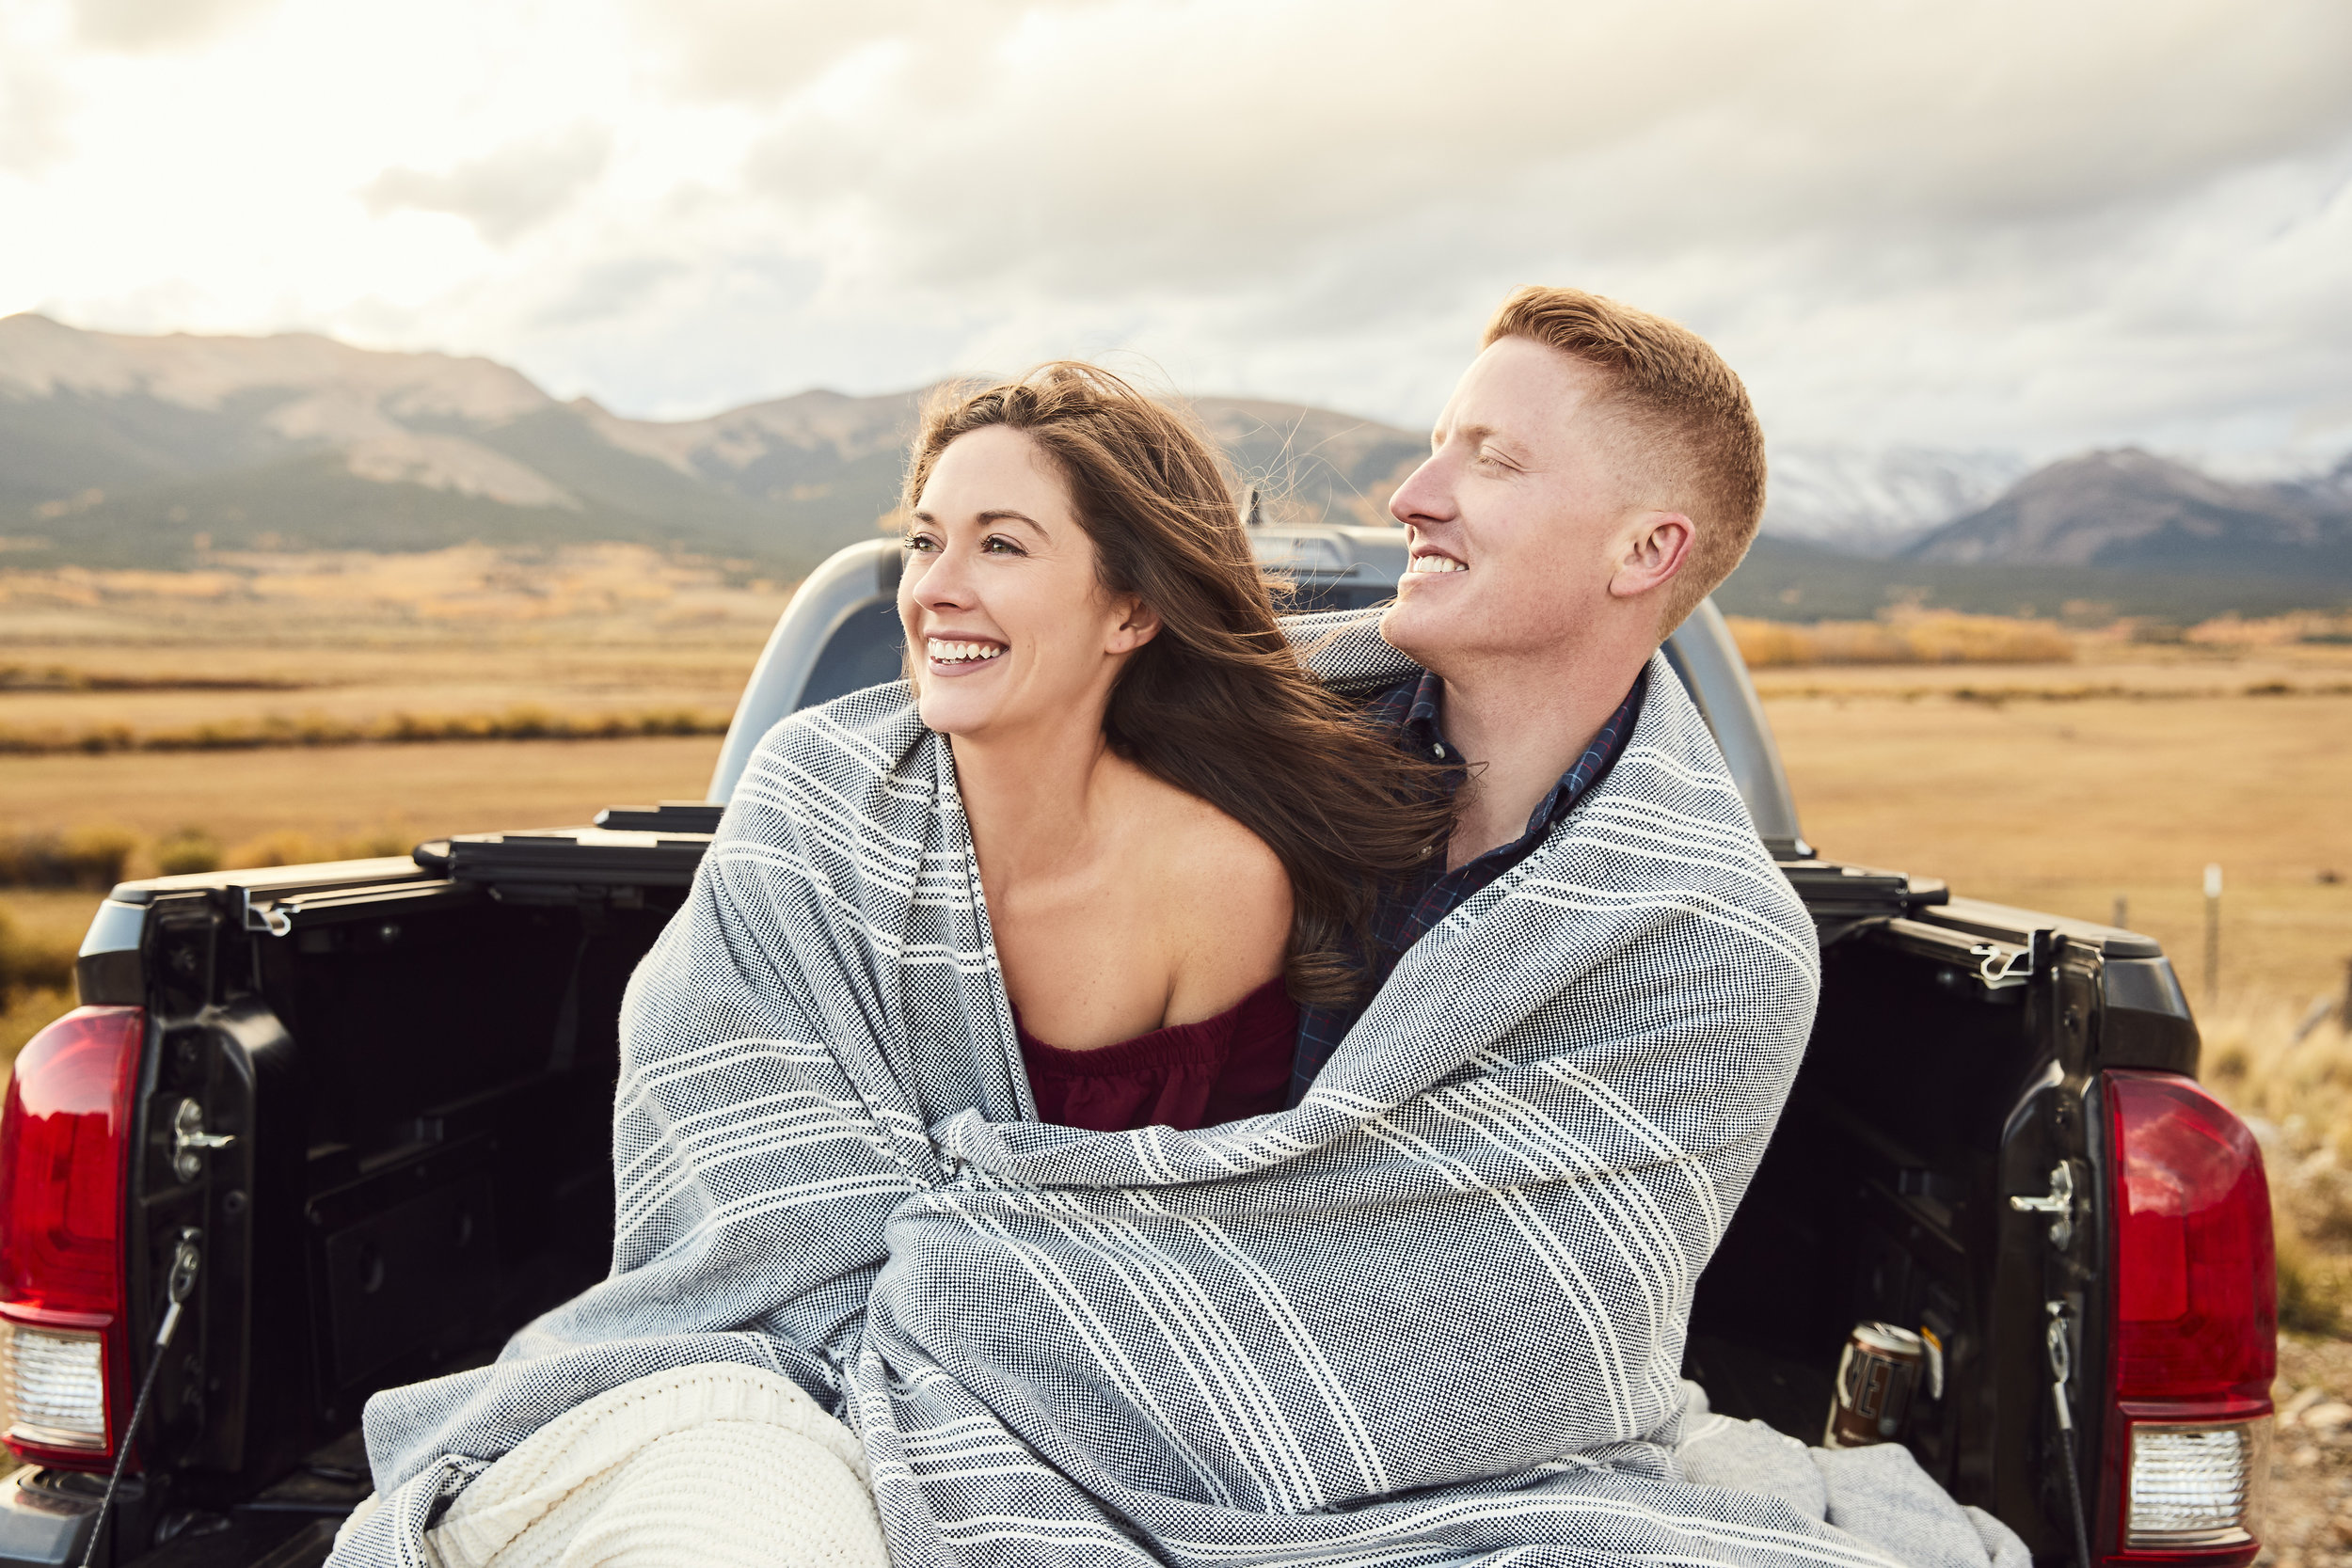 Emily + Jeff's Kenosha Pass Engagement Session - Kenosha Pass, CO // Beer // Aspens // EngagementsEngagement Photos Blog Post